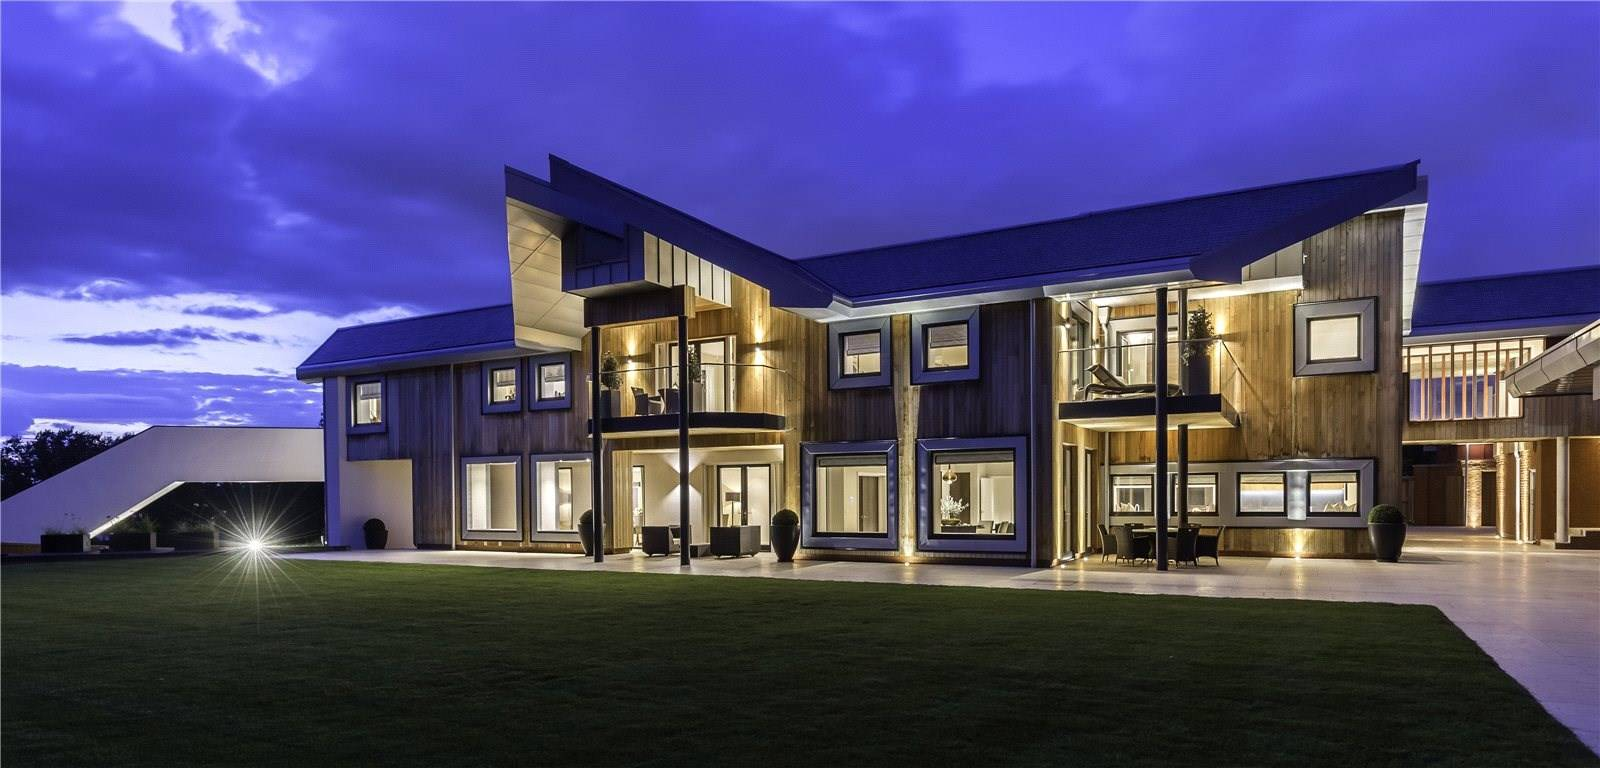 This newly built 23,500-square-foot contemporary-styled manor house is set in 40 acres of land in prime polo territory just outside Windsor, with views of the castle.